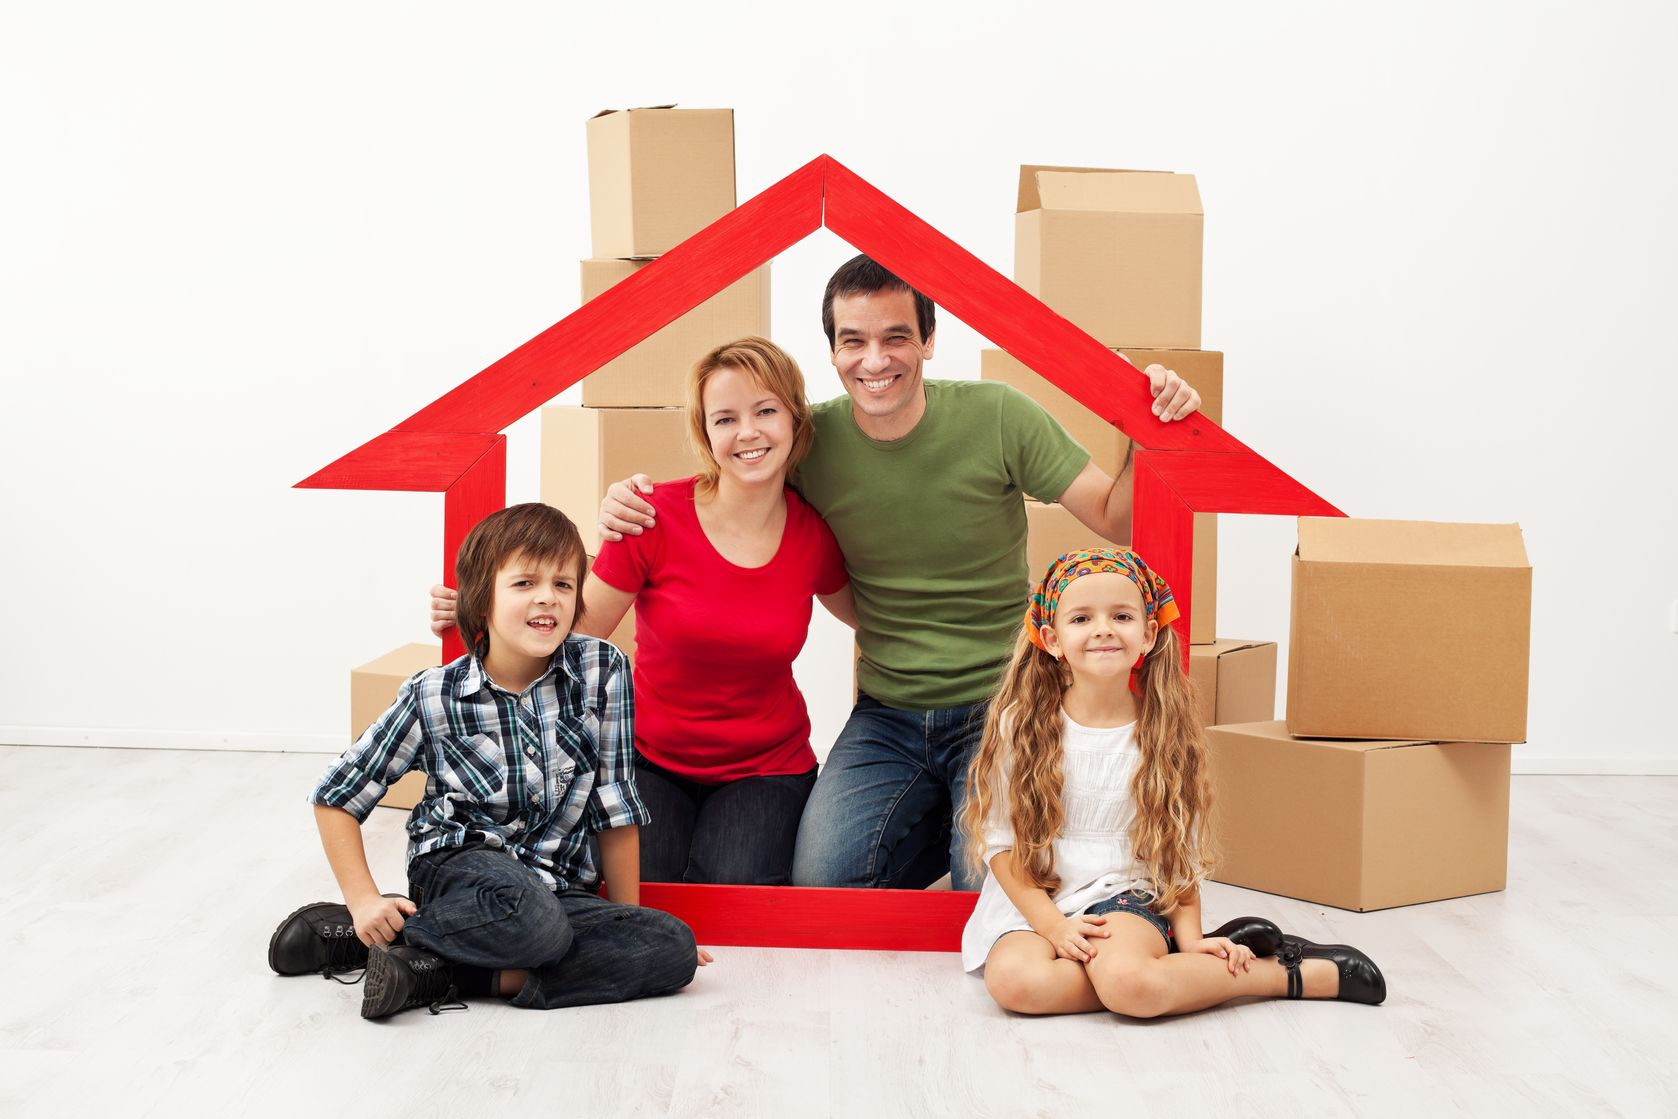 Aurora, Denver, CO. Homeowners Insurance